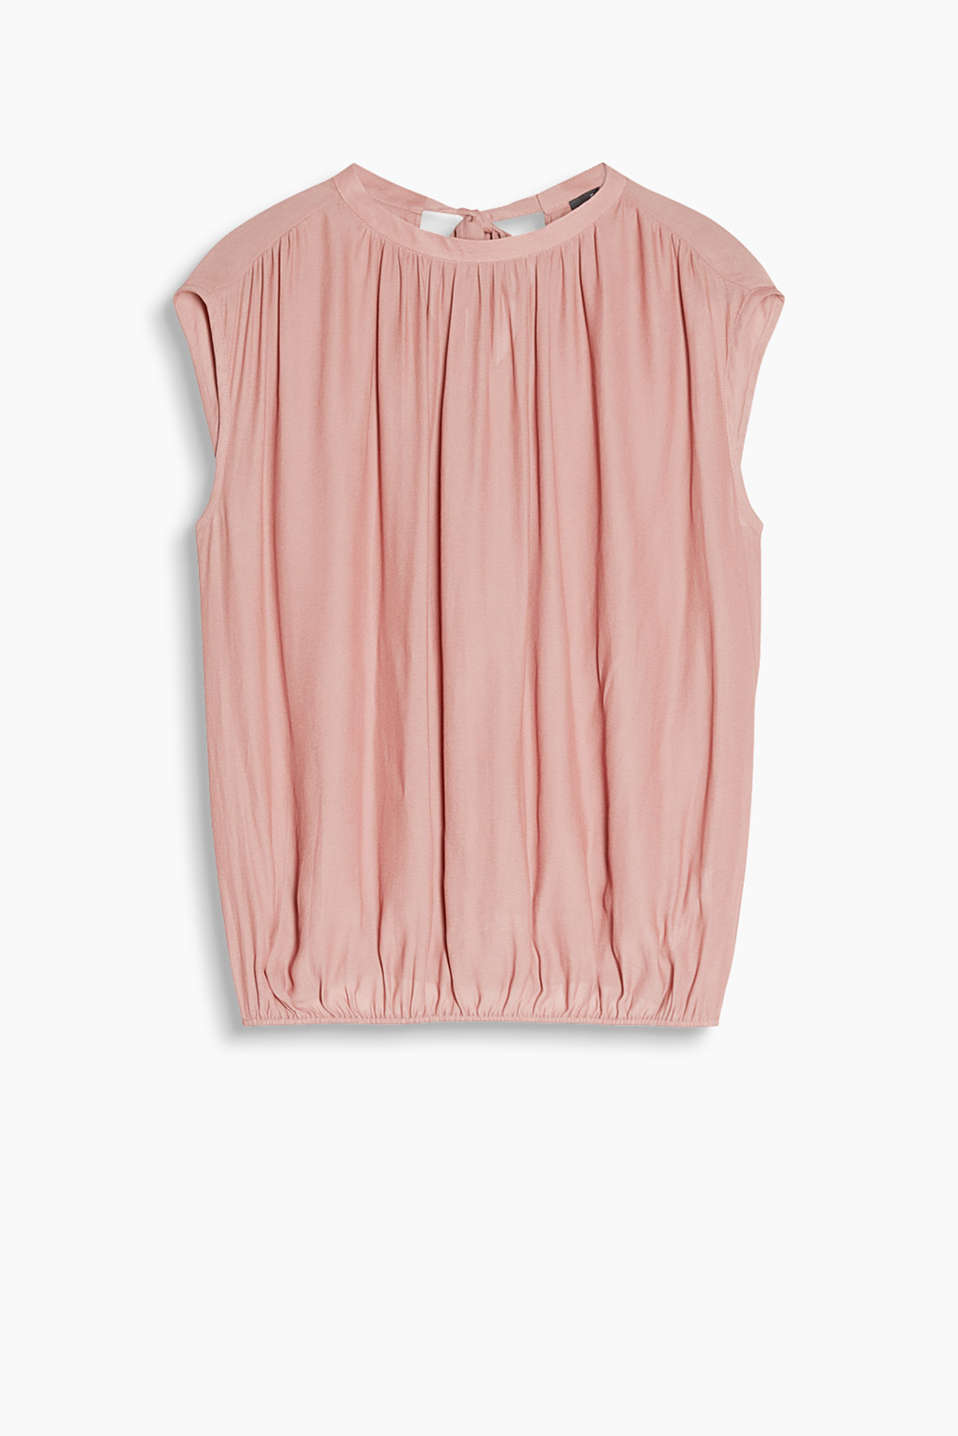 Semi-sheer blouse top in flowing fabric with a bow on the back